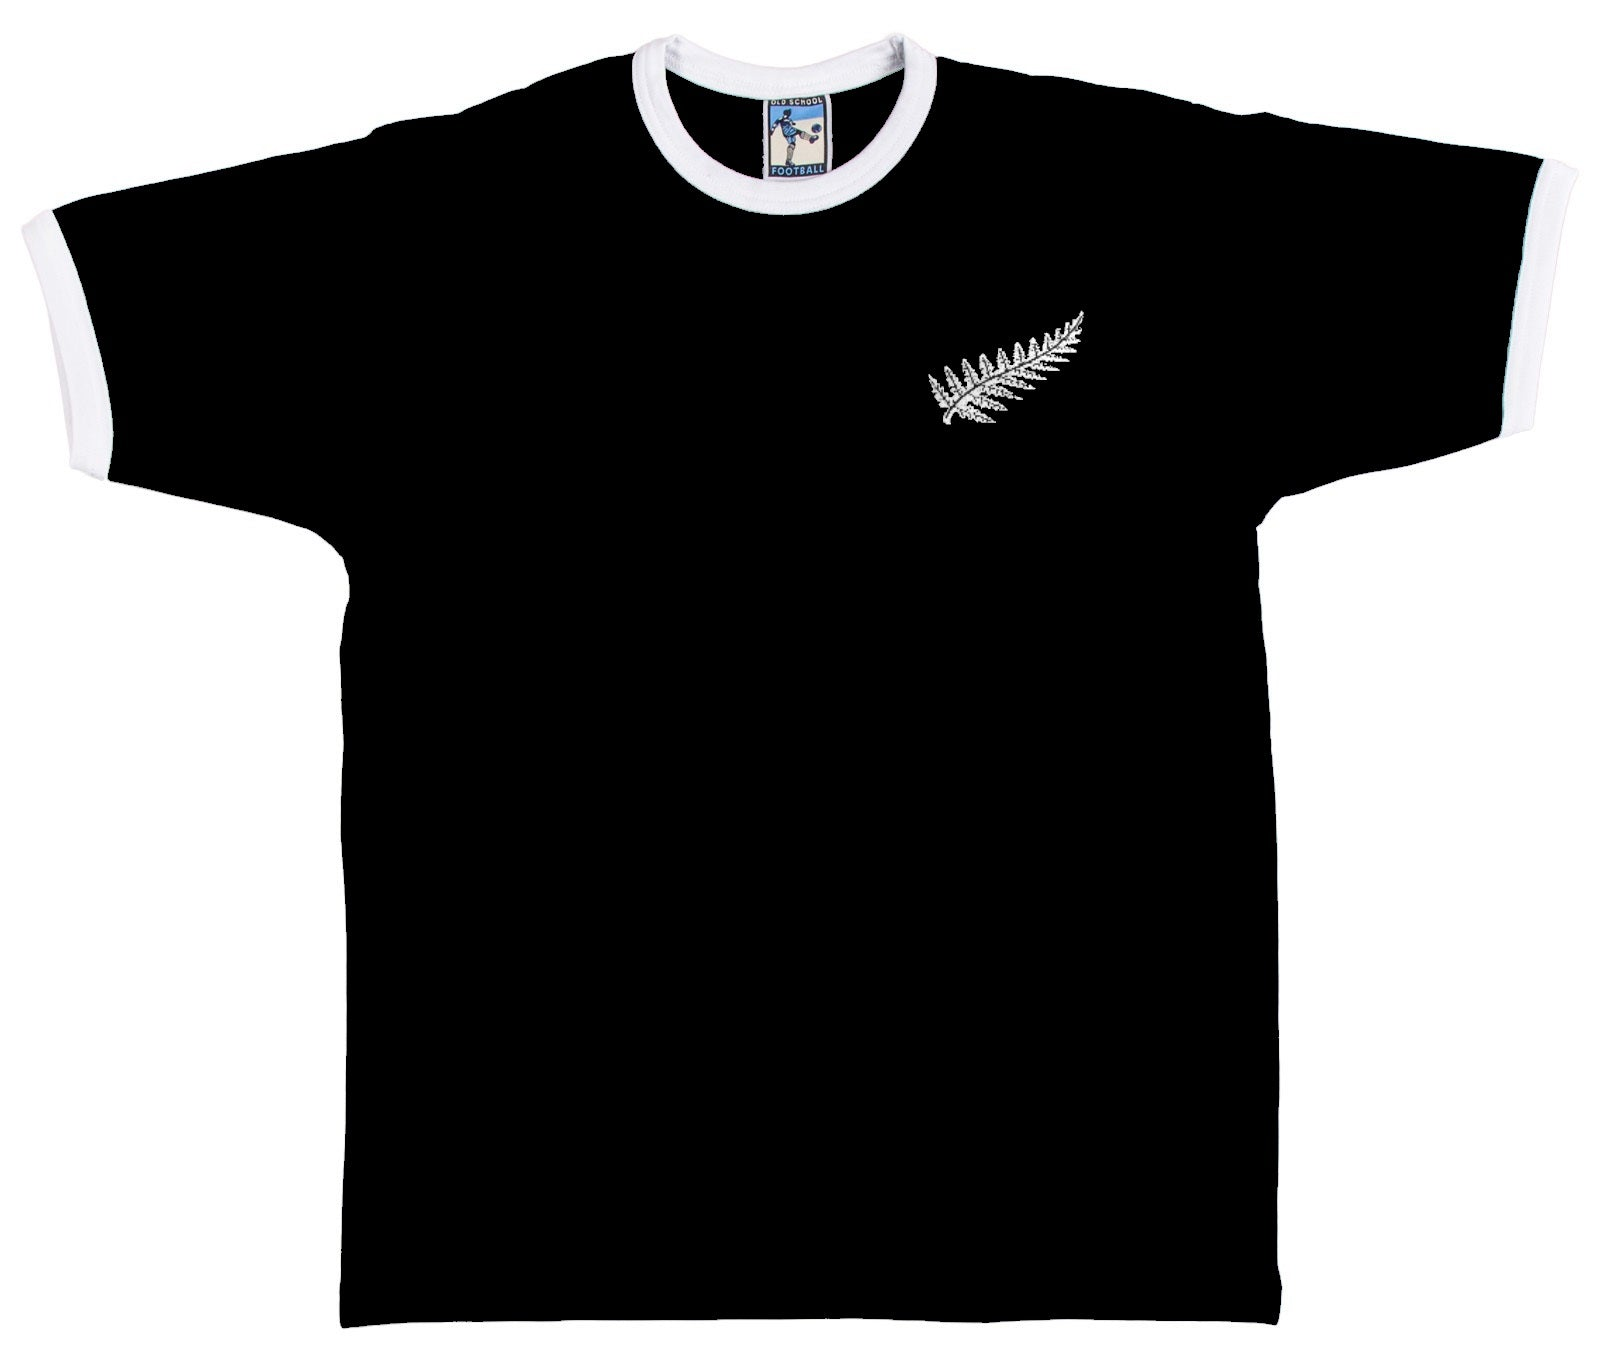 New Zealand National Rugby T-Shirt - Old School Football